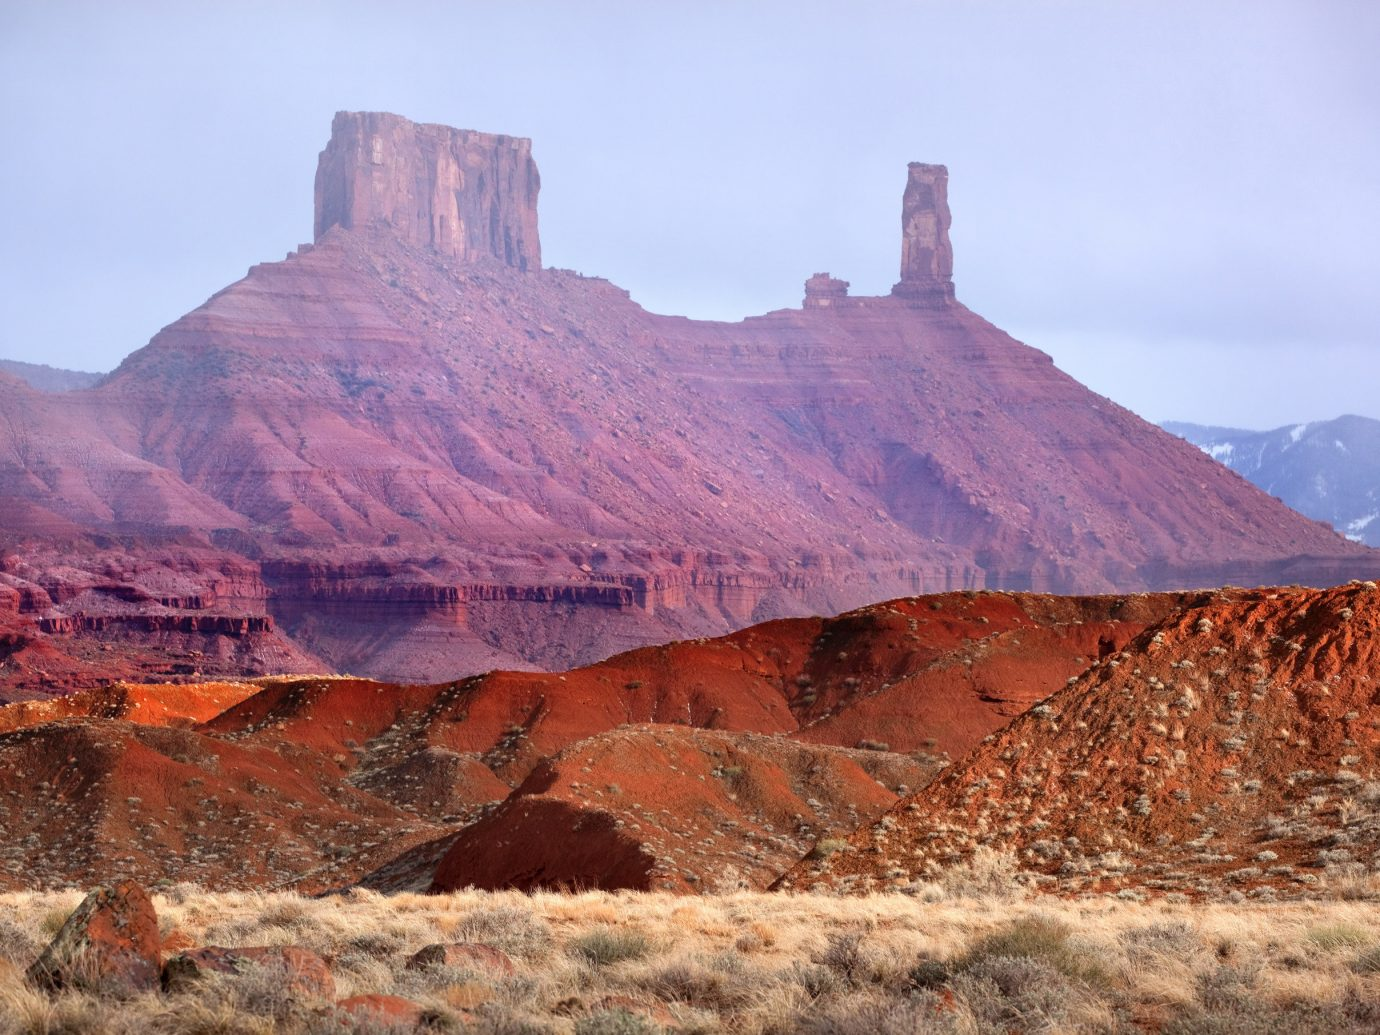 Offbeat mountain valley canyon outdoor sky Nature mountainous landforms butte geographical feature landform wilderness natural environment rock background badlands geology landscape plateau wadi terrain formation cliff material